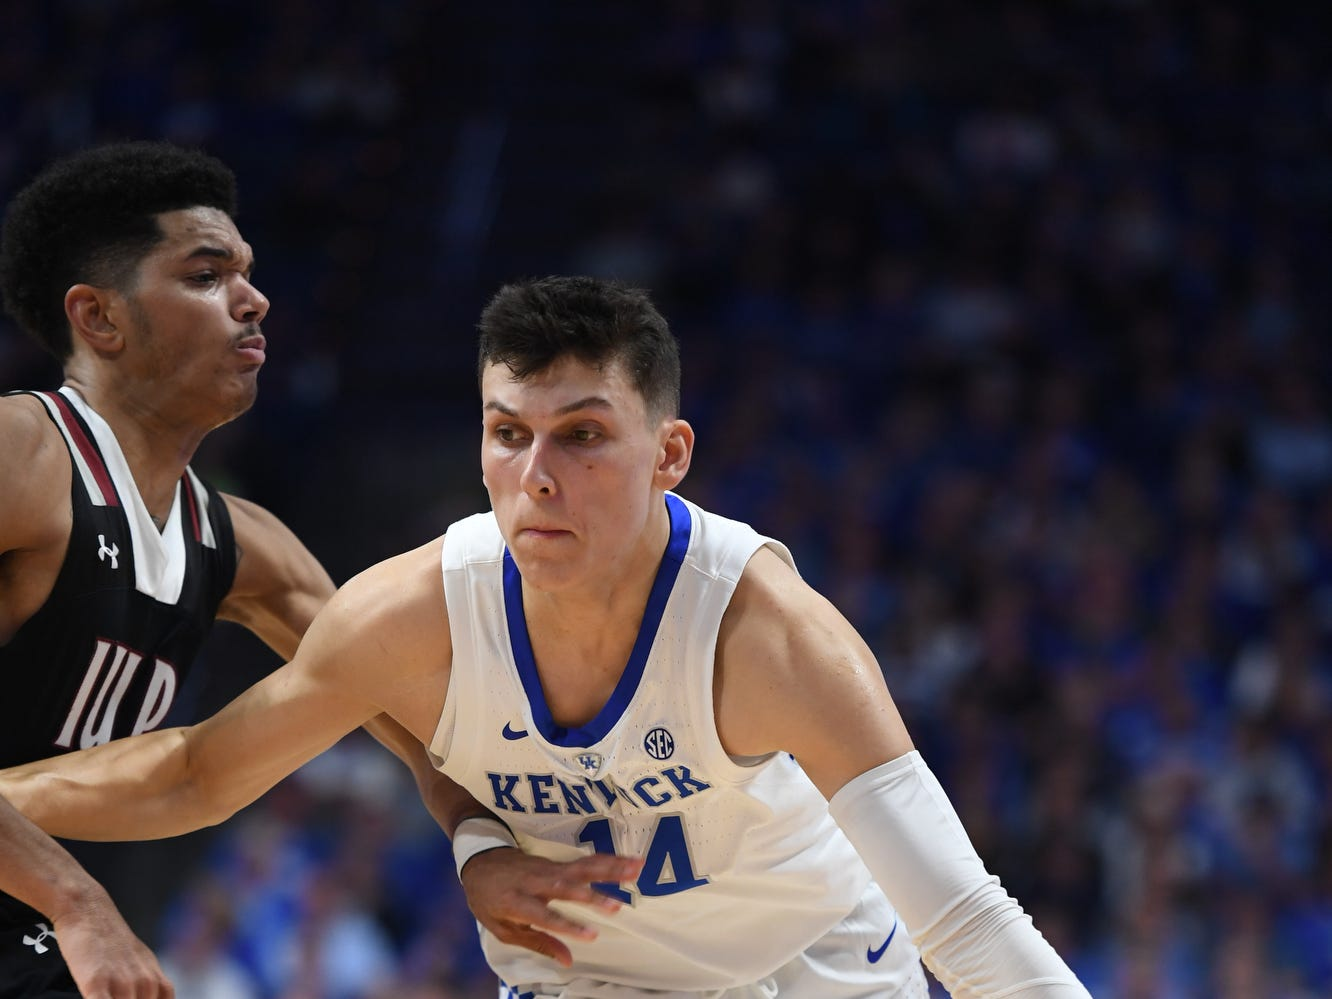 Tyler Herro drives during the University of Kentucky basketball game against Indiana University of Pennsylvania at Rupp Arena on Friday, Nov. 2, 2018.